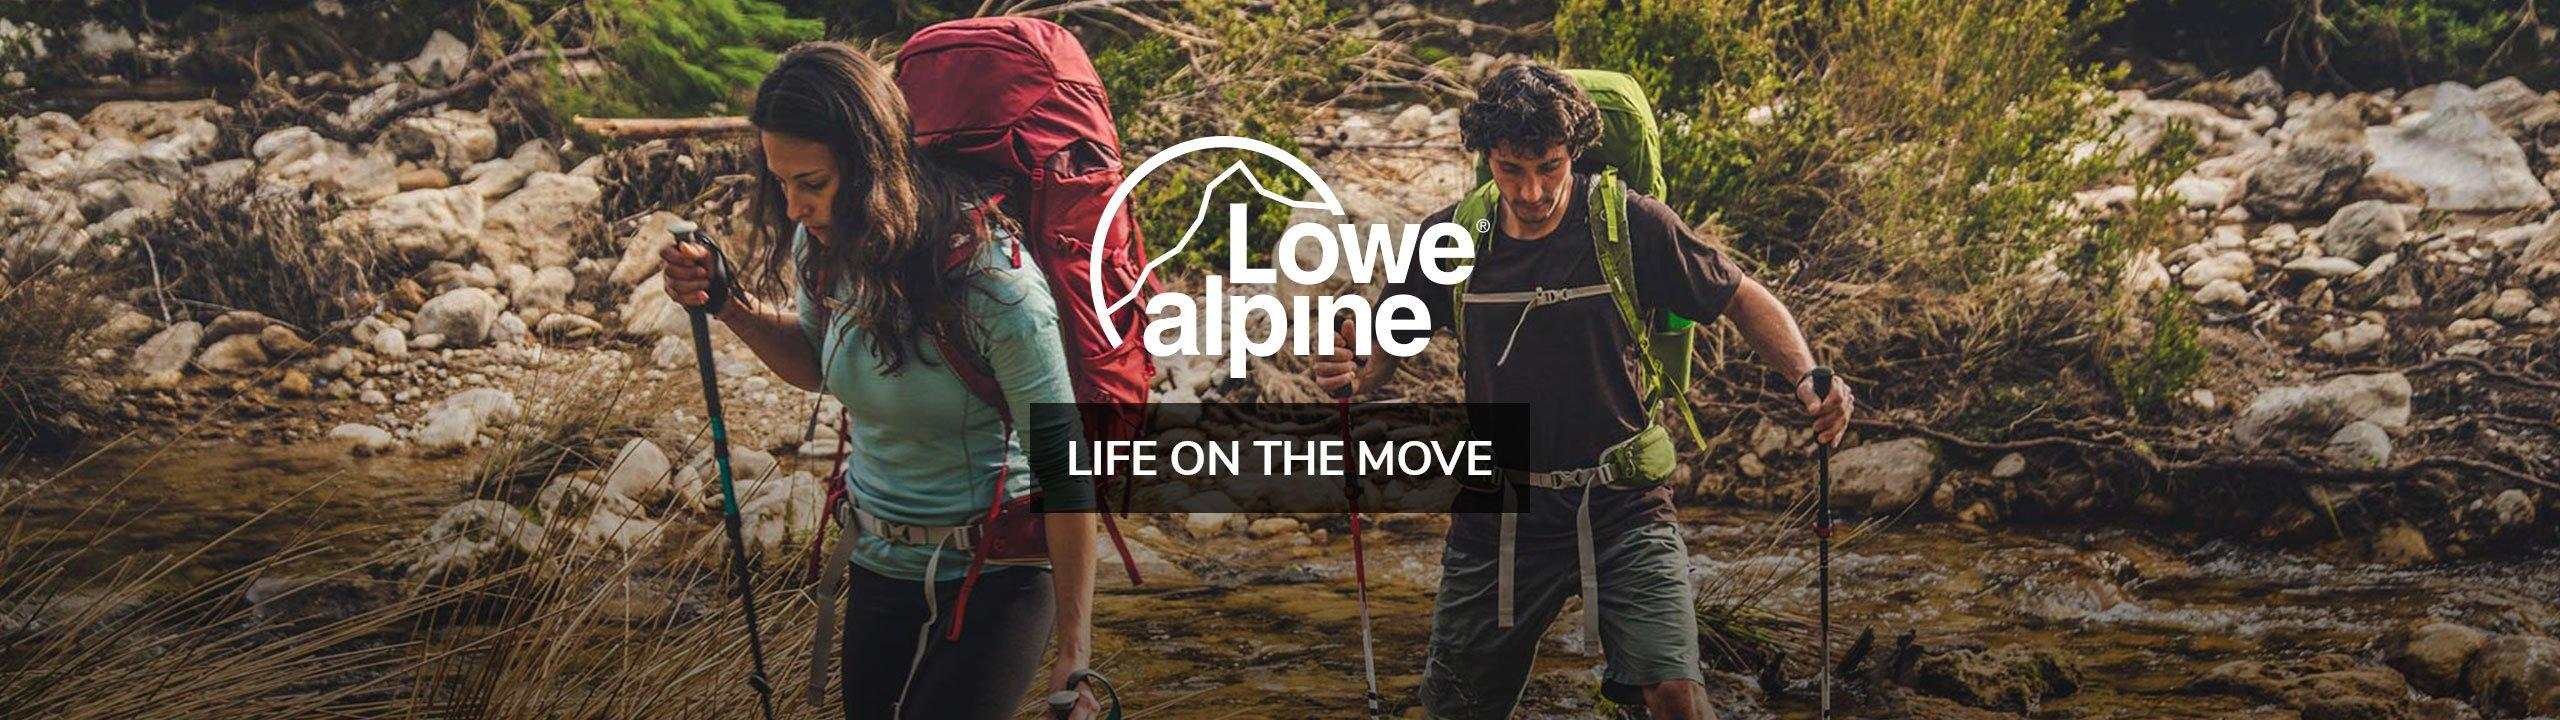 Lowe Alpine - Life on The Move